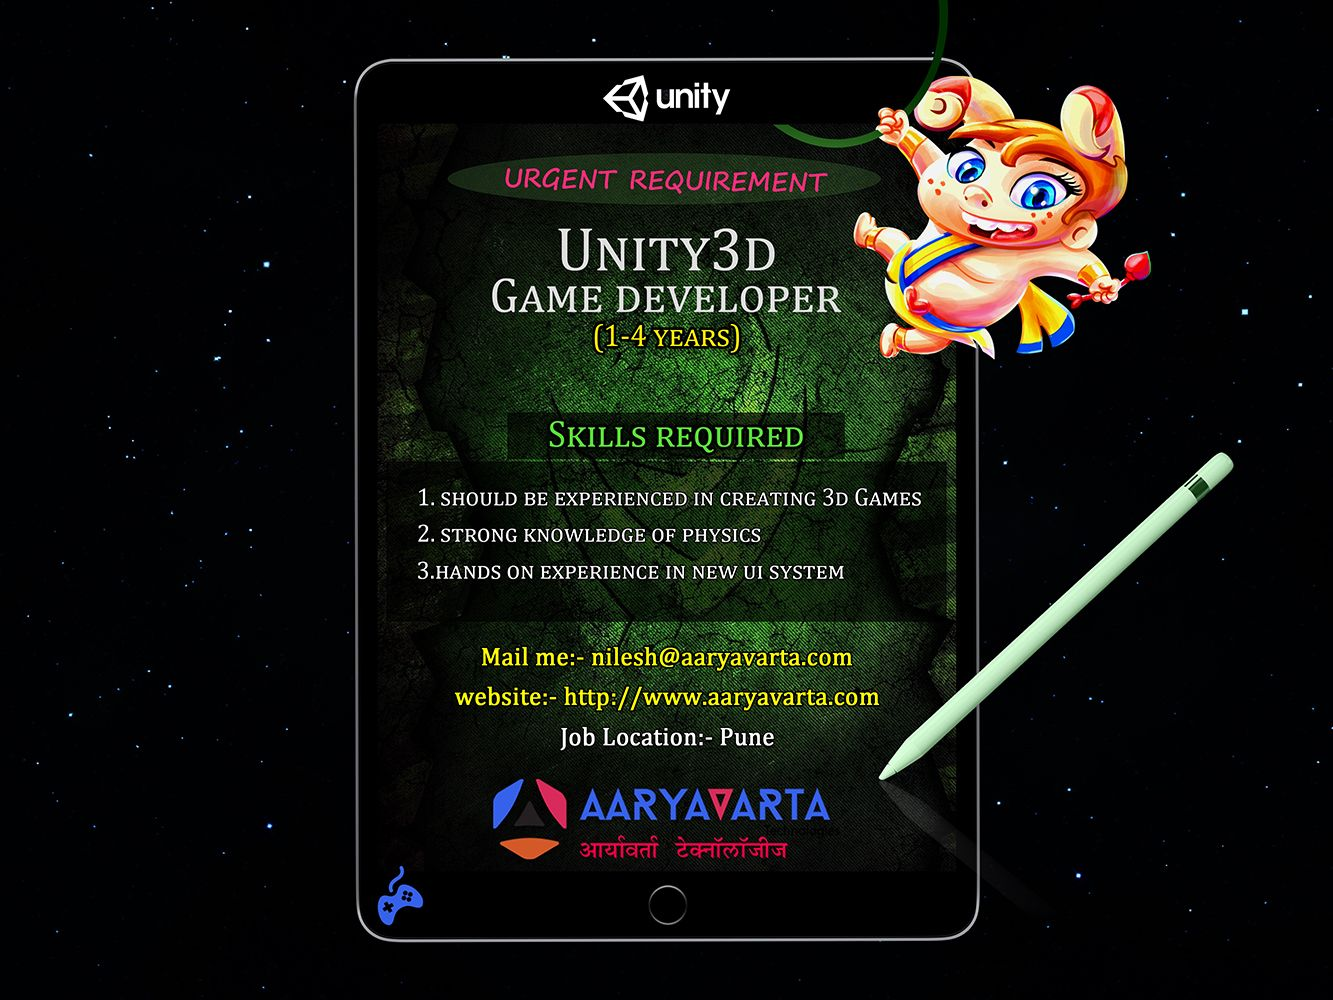 Unity3d Game Development Jobs In India Pune Need A Game